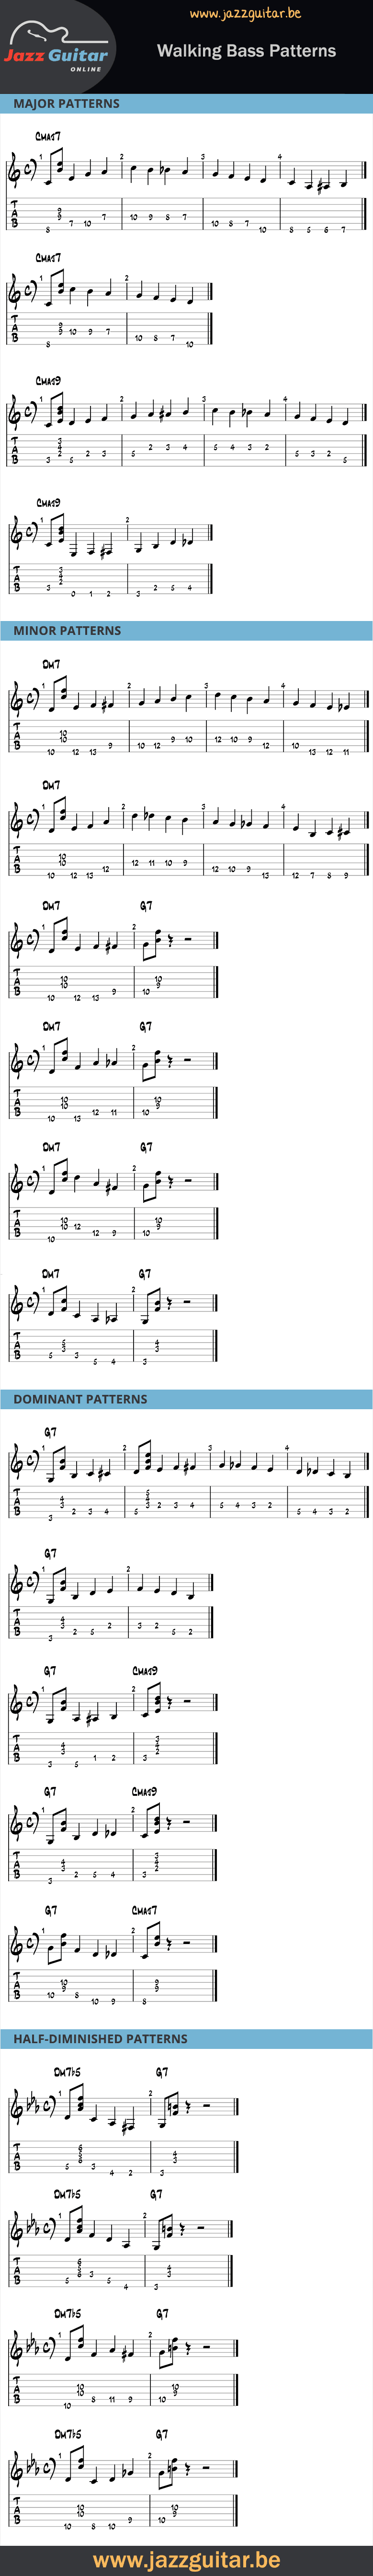 Walking bass line patterns